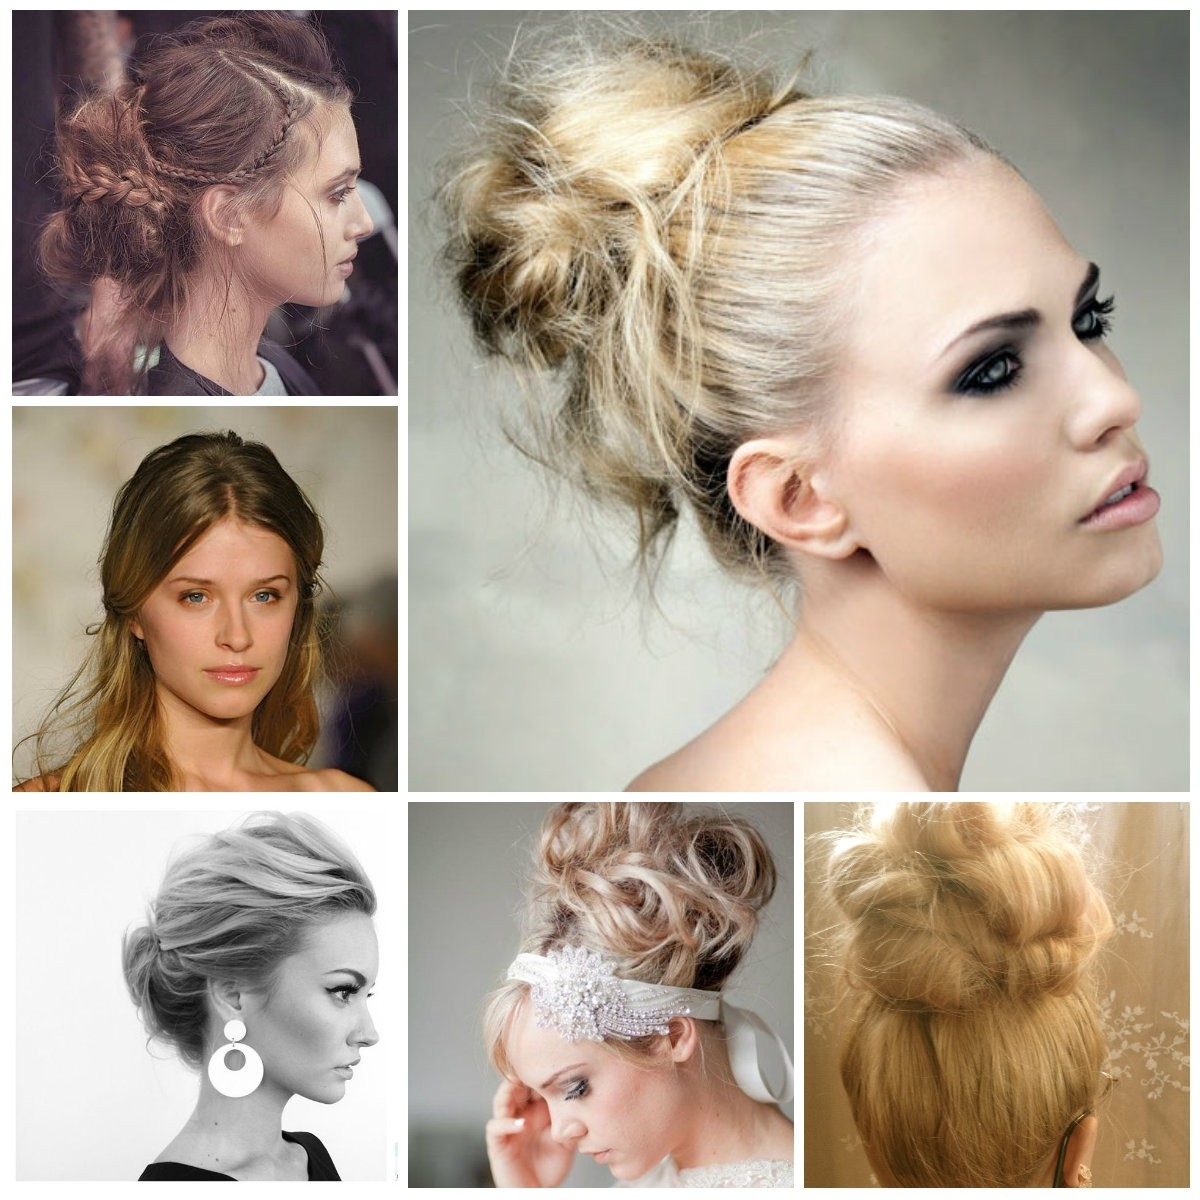 Messy Updo Hairstyles For 2017 | Hairstyles 2018 New Haircuts And With Regard To Messy Updo Hairstyles (View 4 of 15)